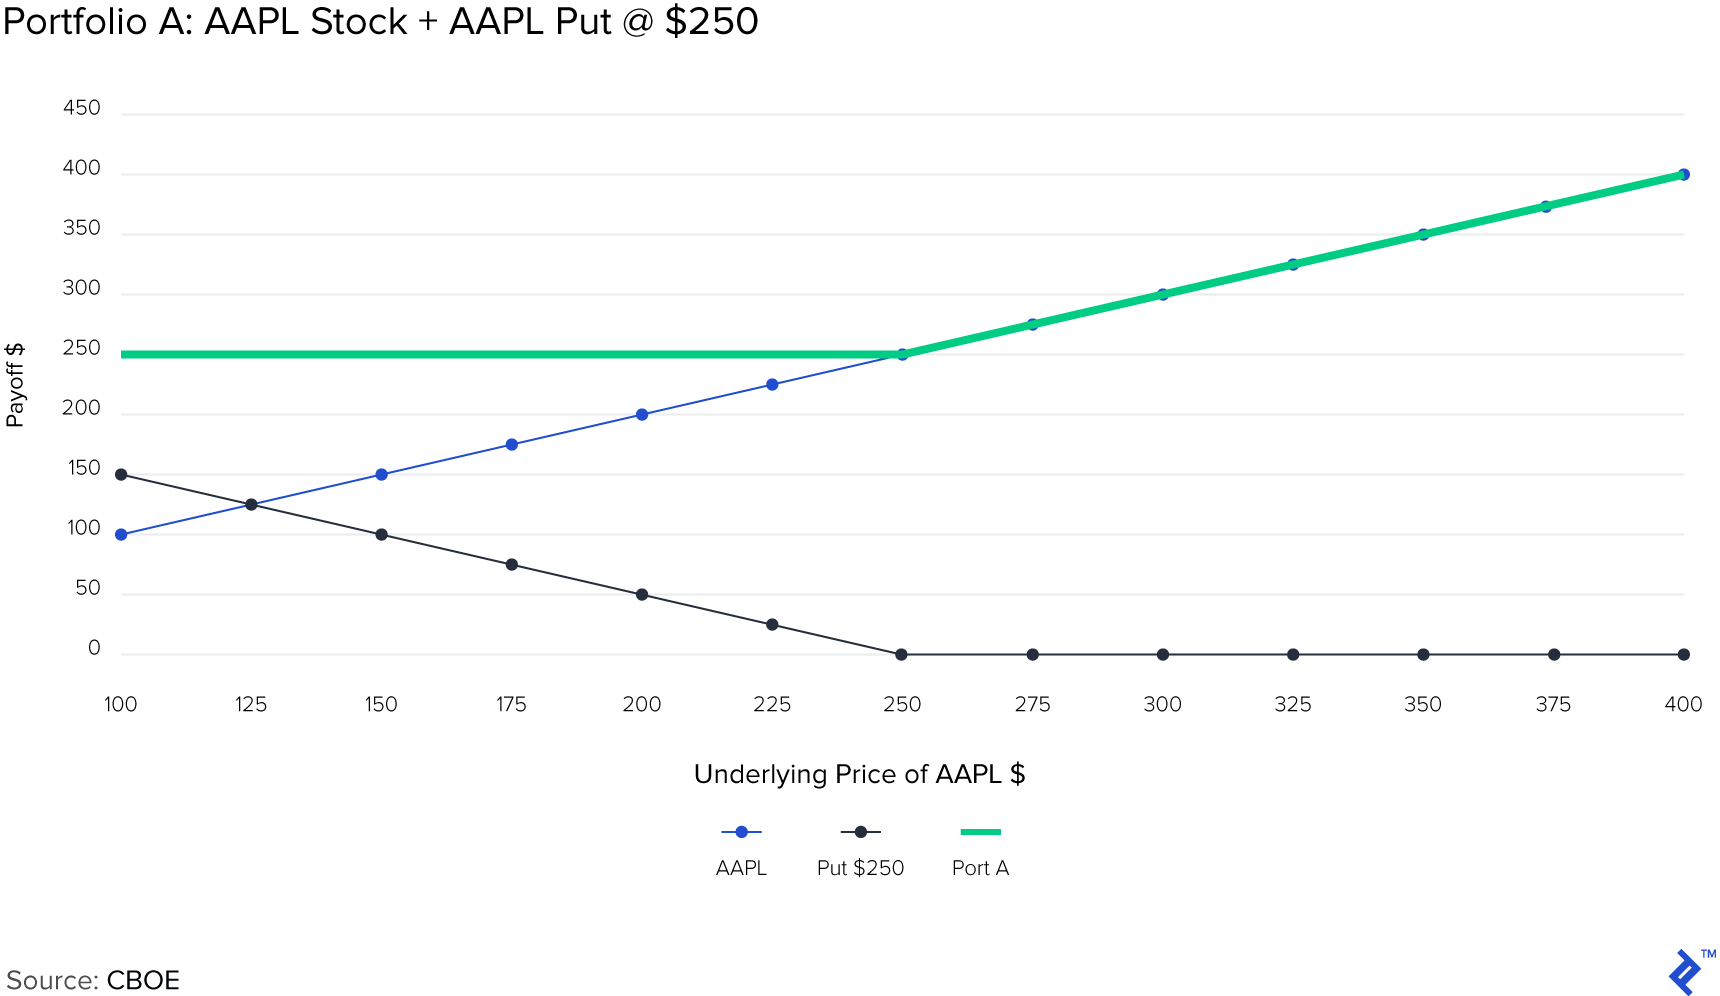 Portfolio A: AAPL Stock + AAPL Put at $250